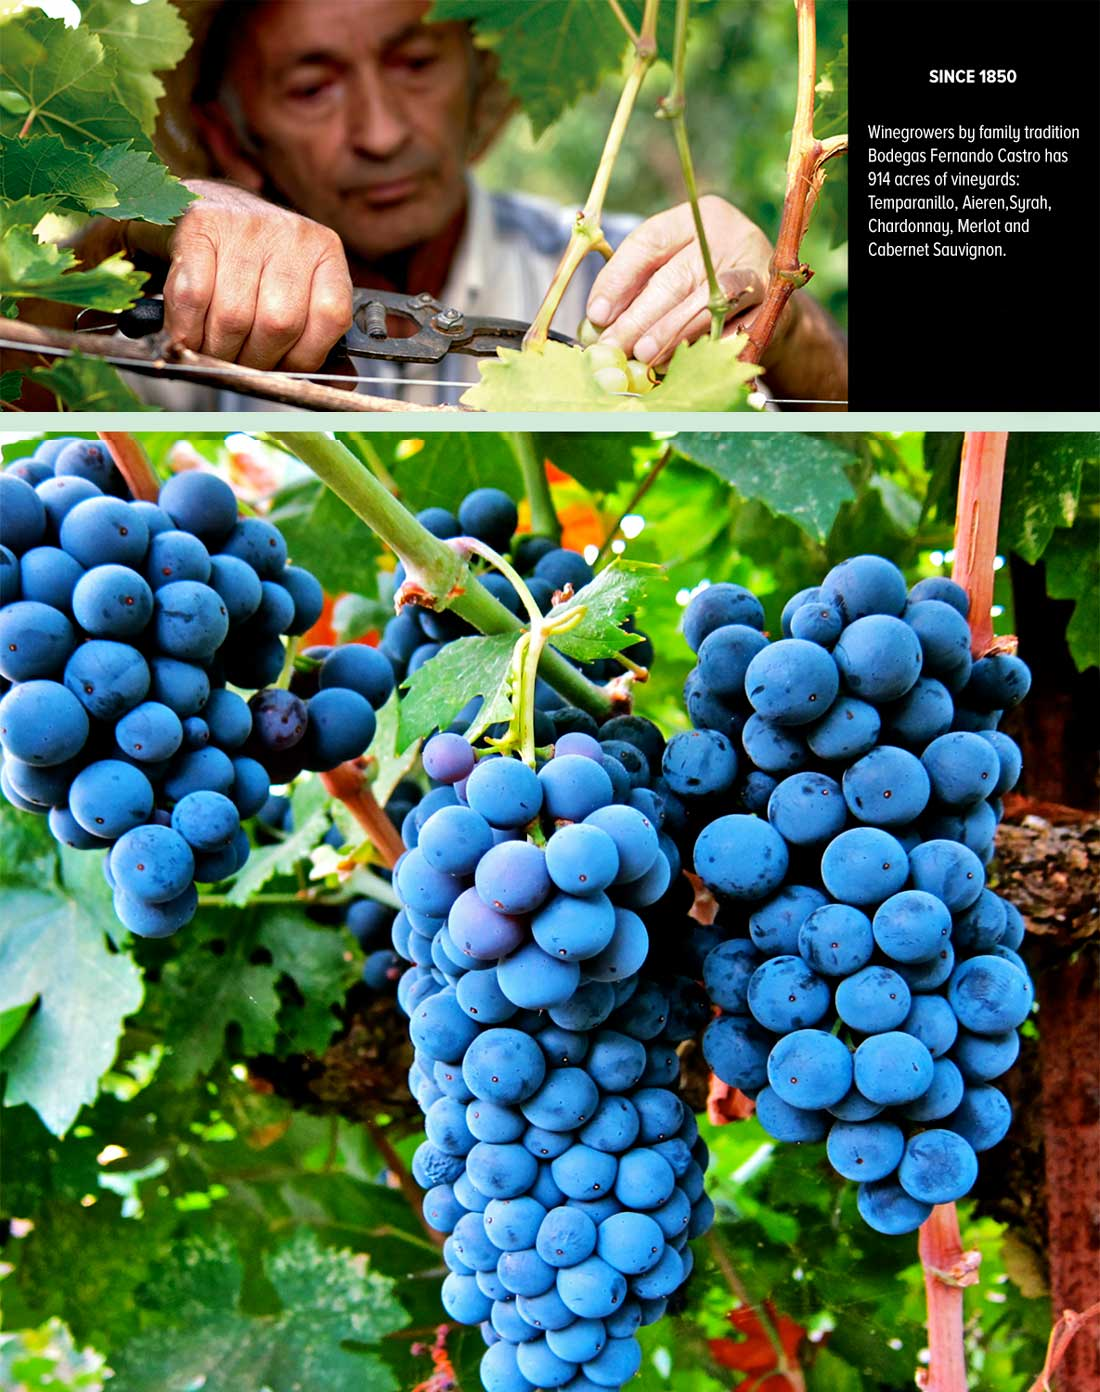 MERLOT  GRAPES PRODUCED   BY BODEGA FERNAND CASTRO